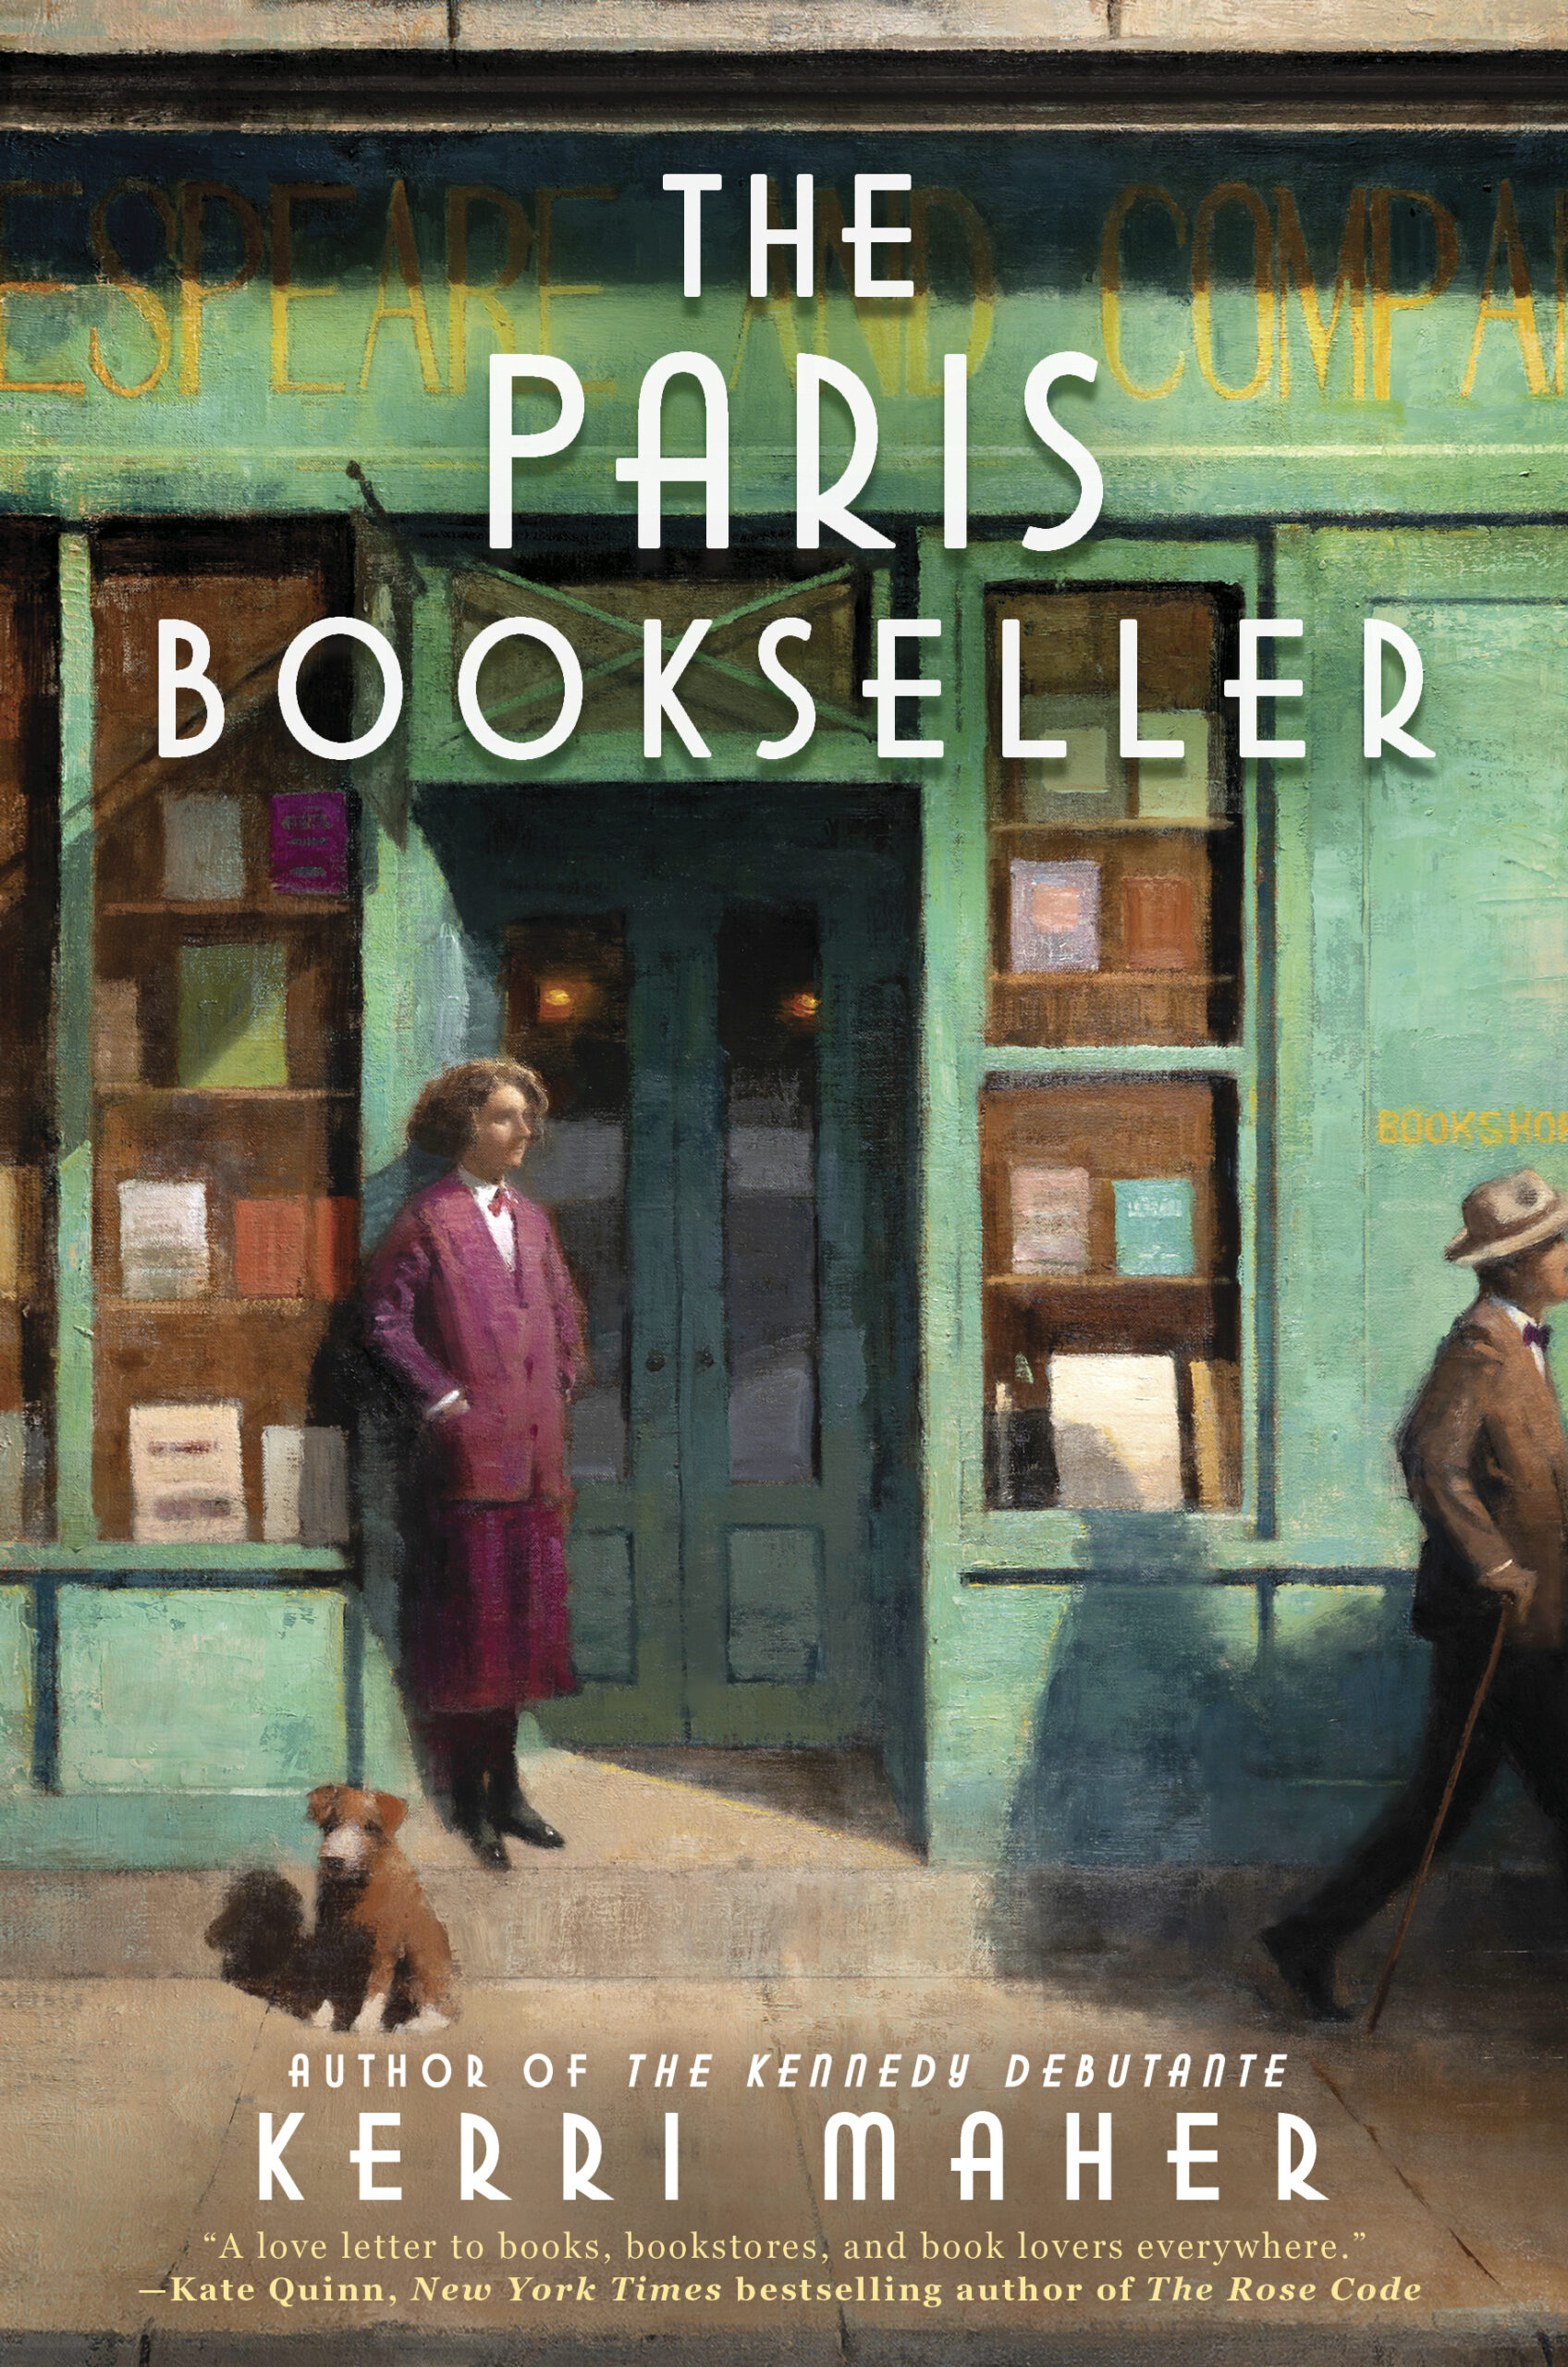 The Paris Bookseller by author Kerri Maher